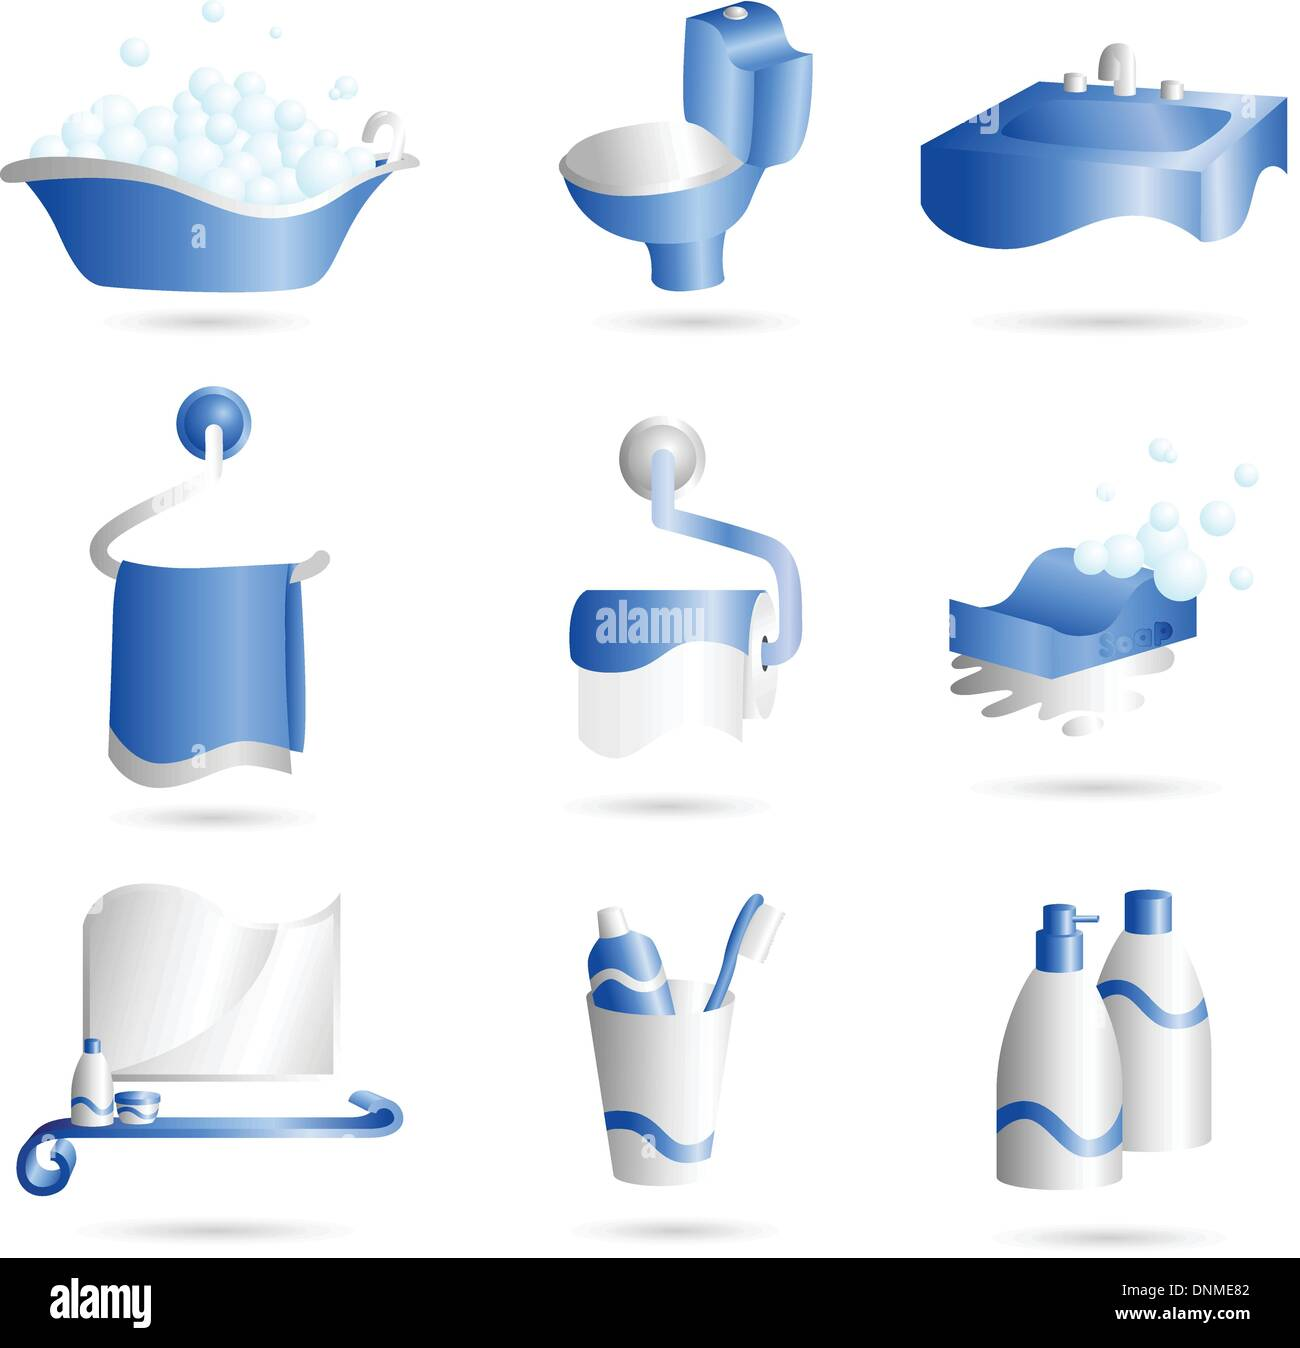 A vector illustration of icons of things that can be found in bathroom - Stock Image